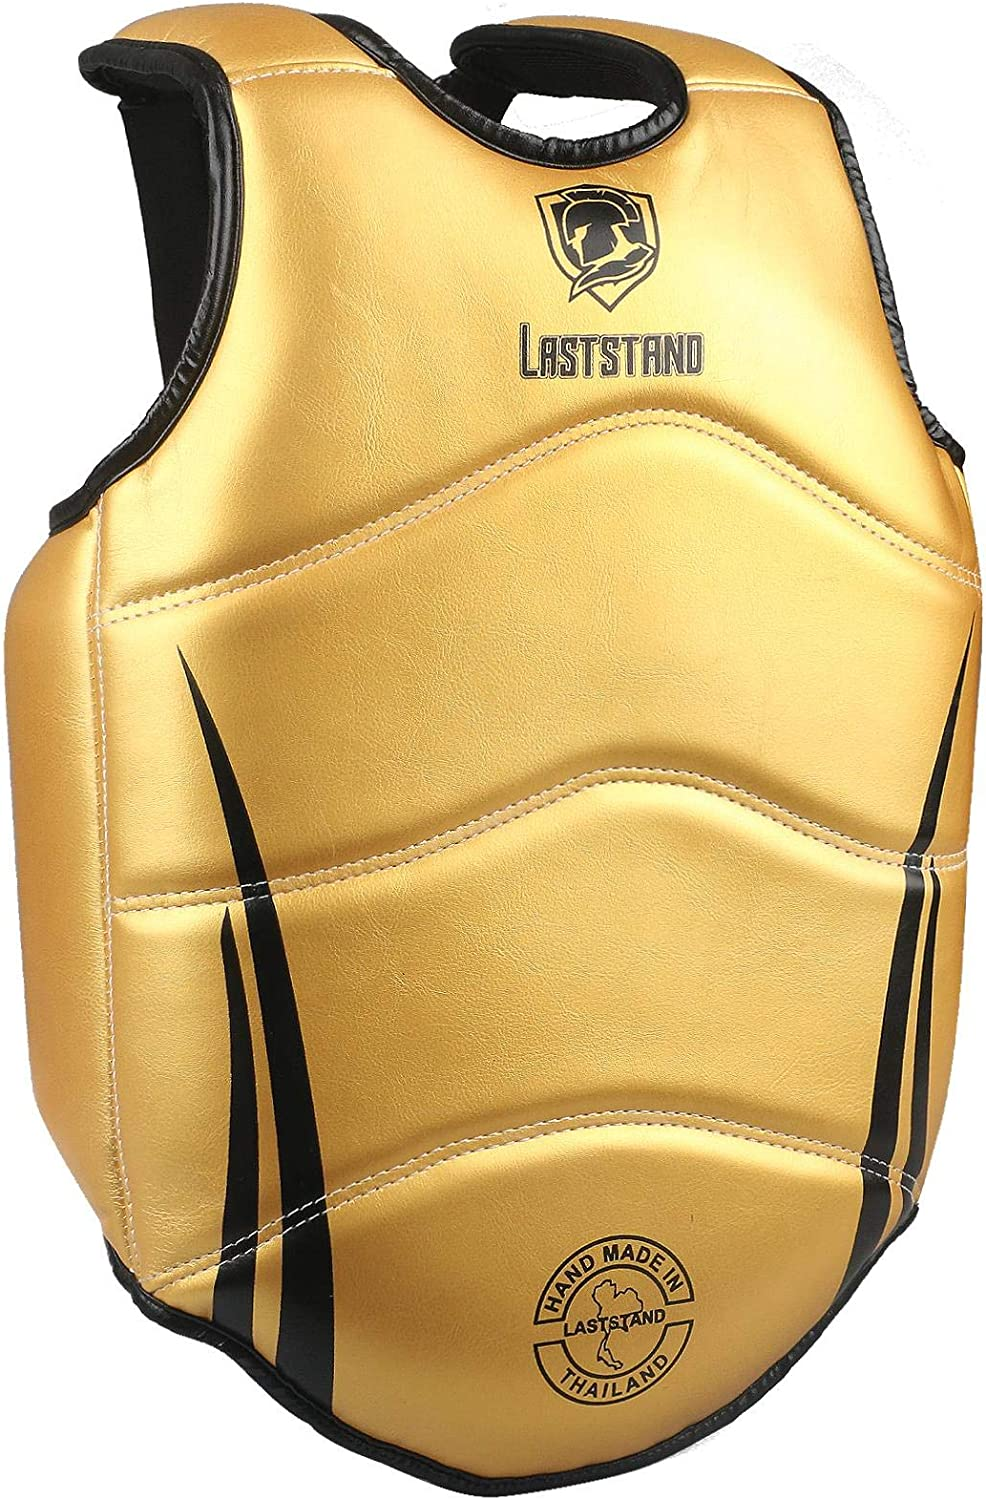 Special sale item ASTSTAND Chest Guard Boxing Fresno Mall Body Kickboxing Ar Martial Protector